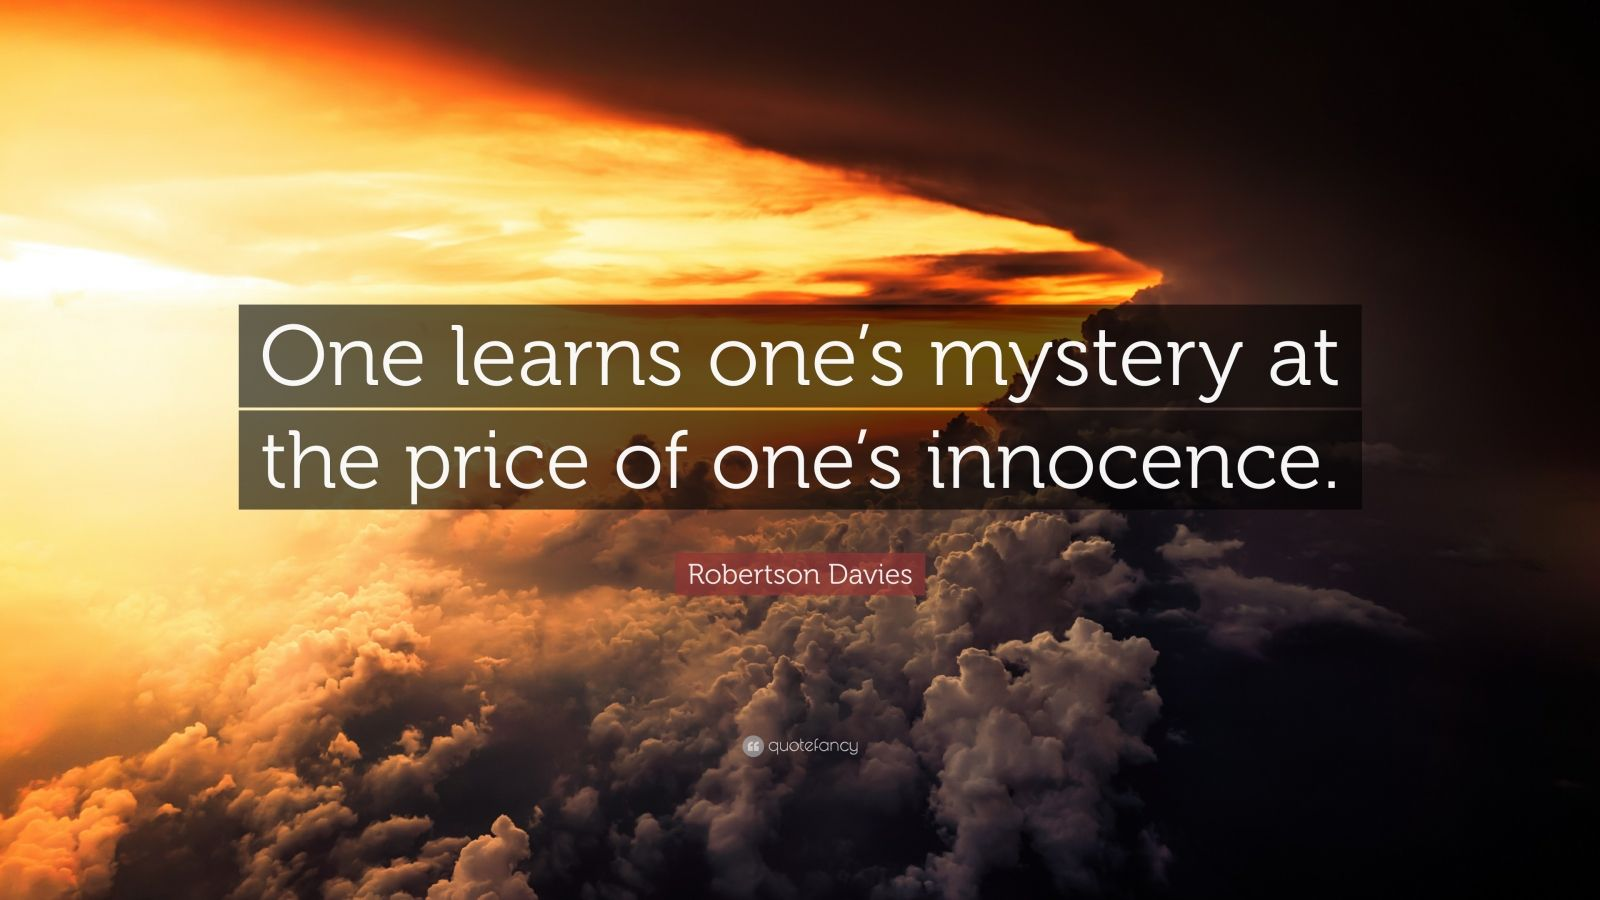 """Robertson Davies Quote: """"One learns one's mystery at the price of one's innocence."""""""